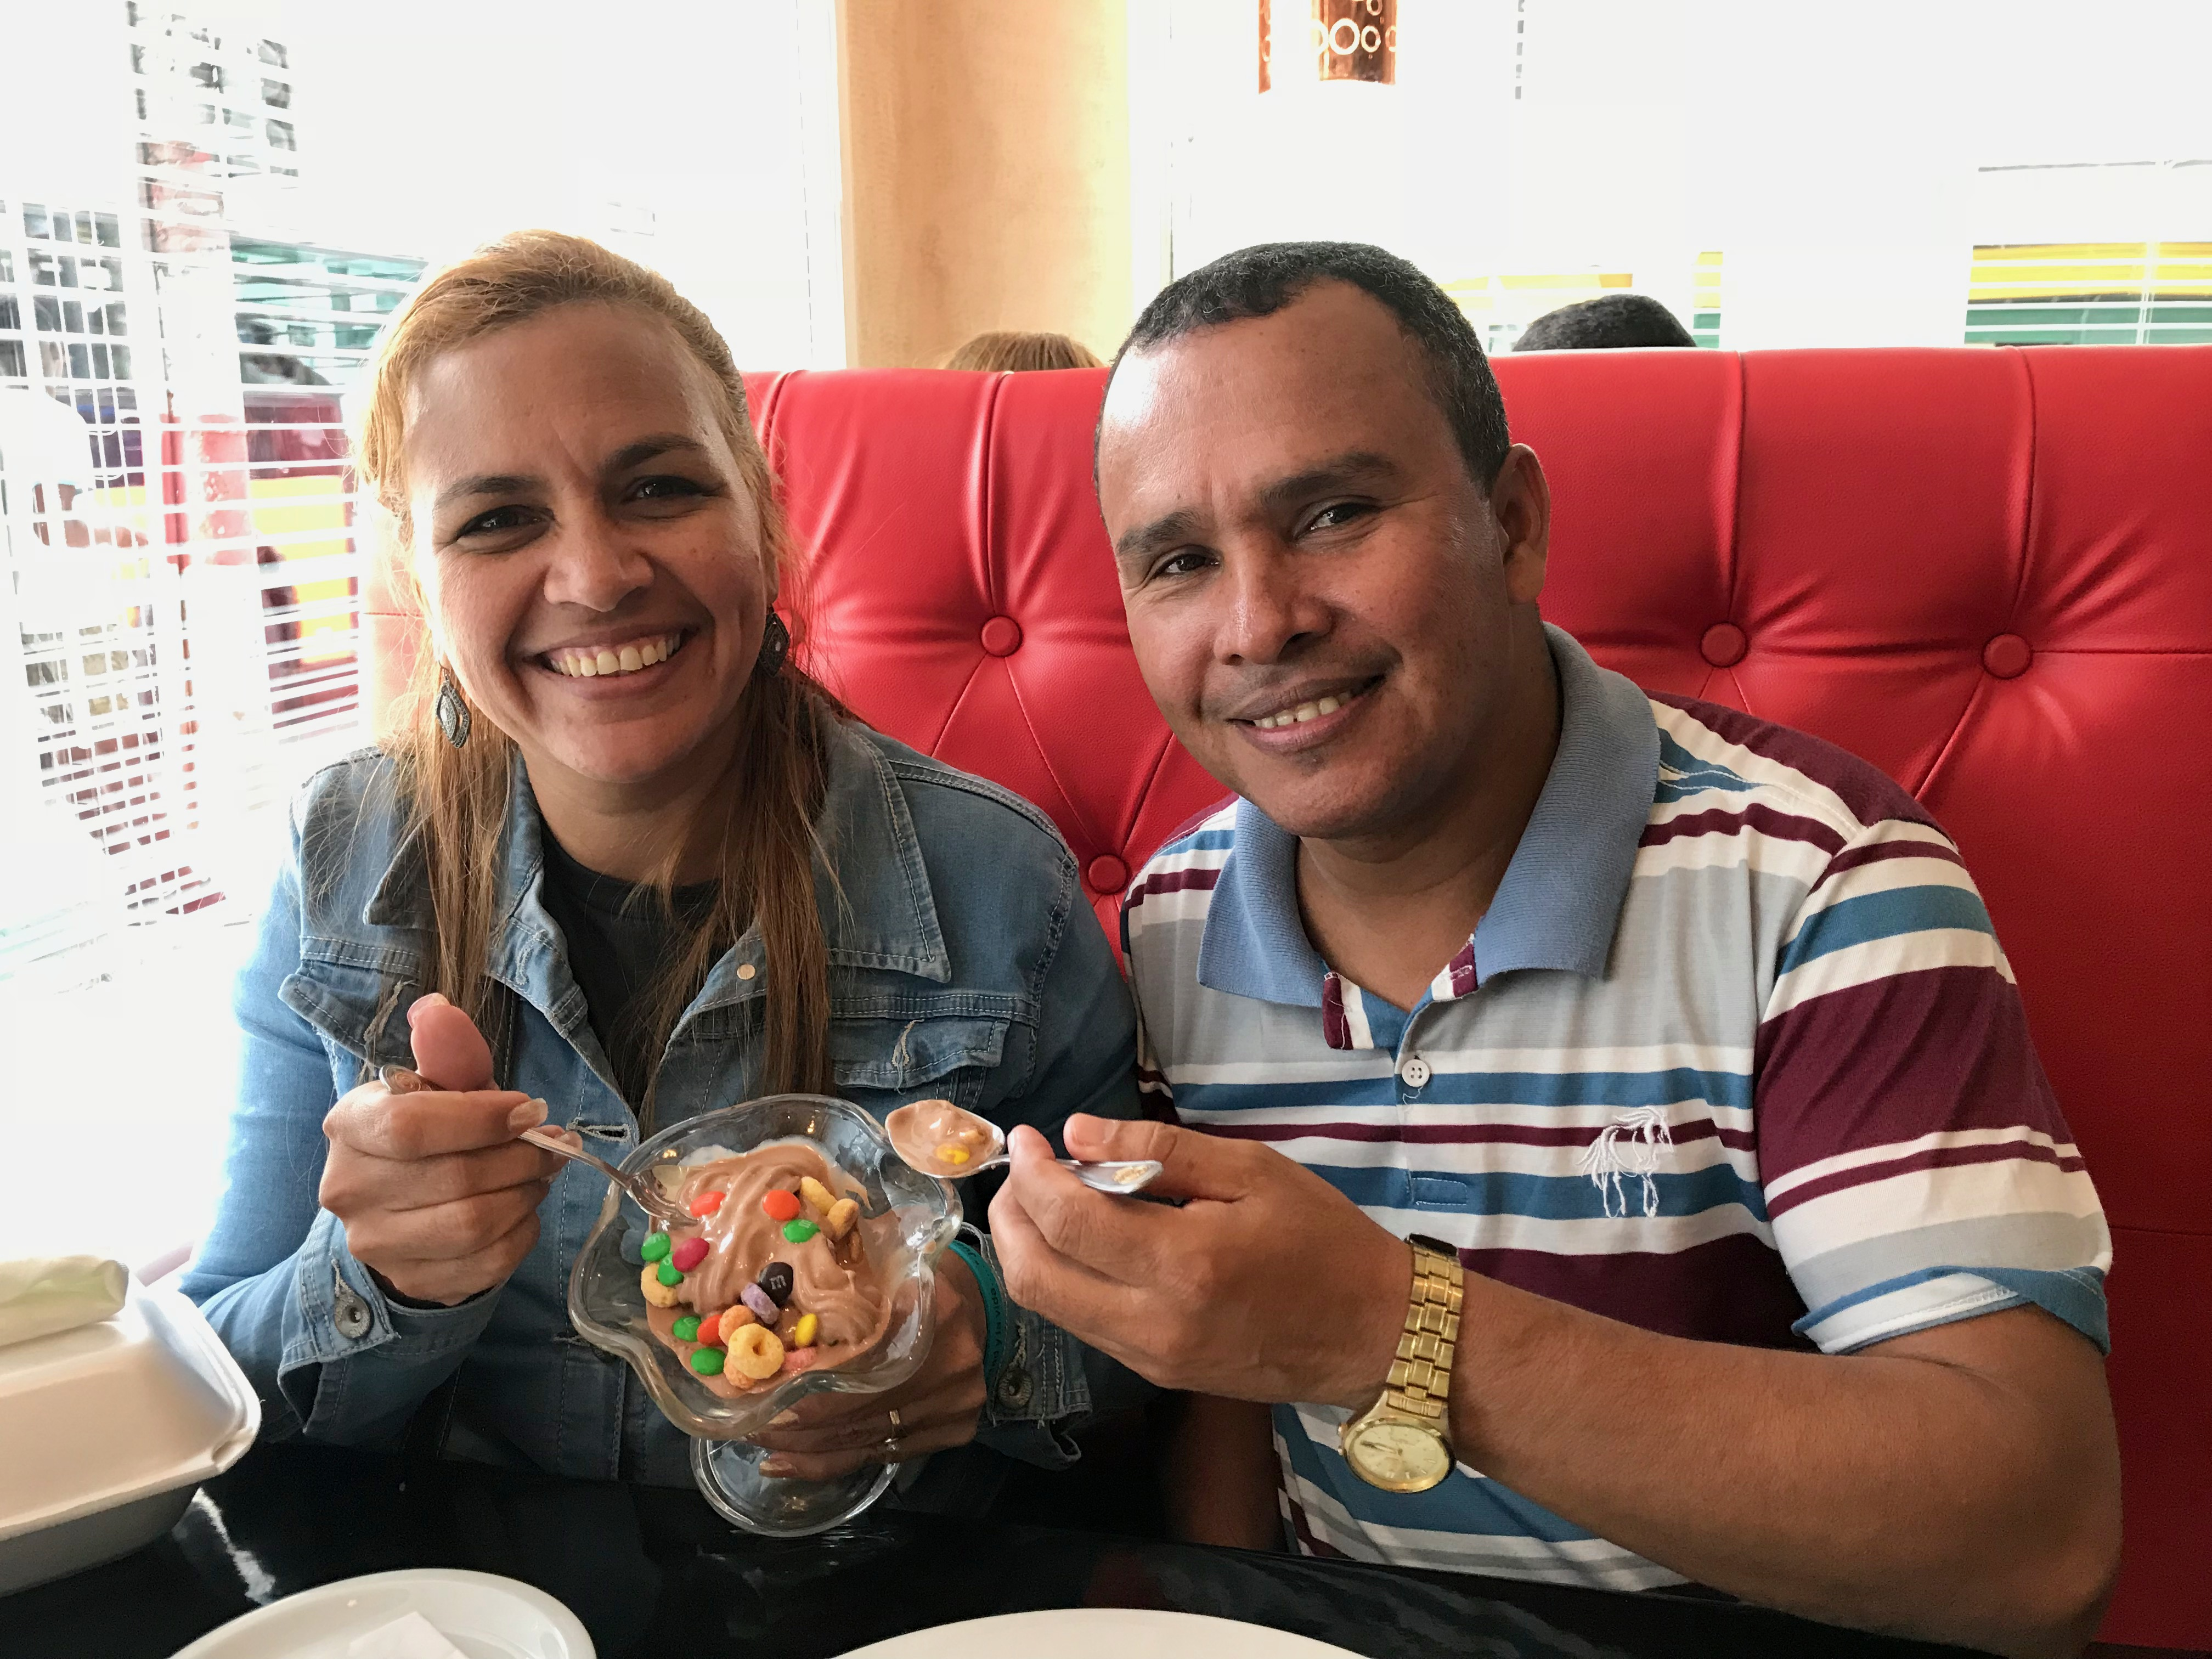 Dawn and I were able to take Luis and May out for a treat. What a special time for all of us!